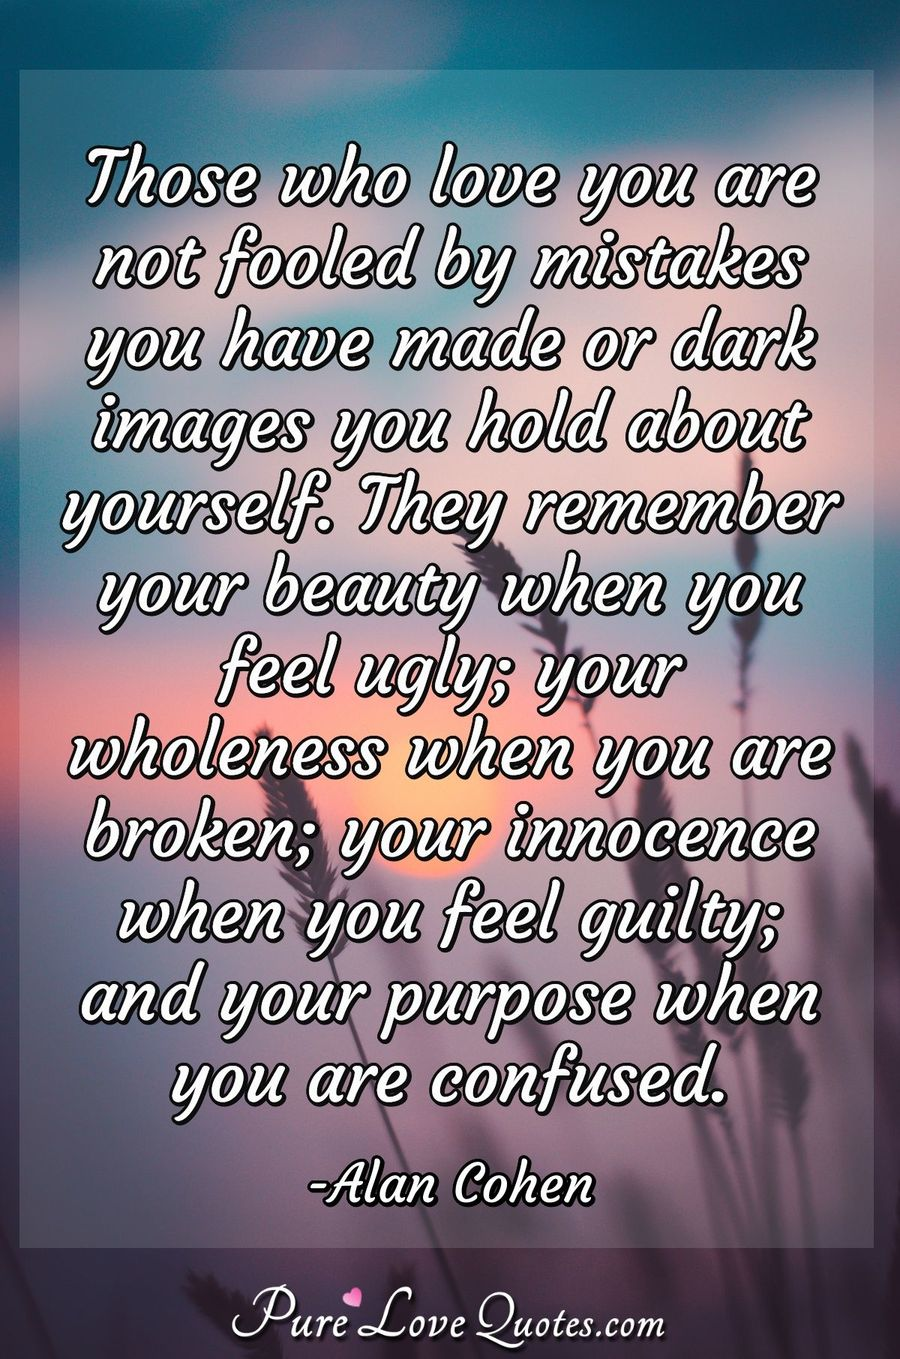 Those Who Love You Are Not Fooled By Mistakes You Have Made Or Dark